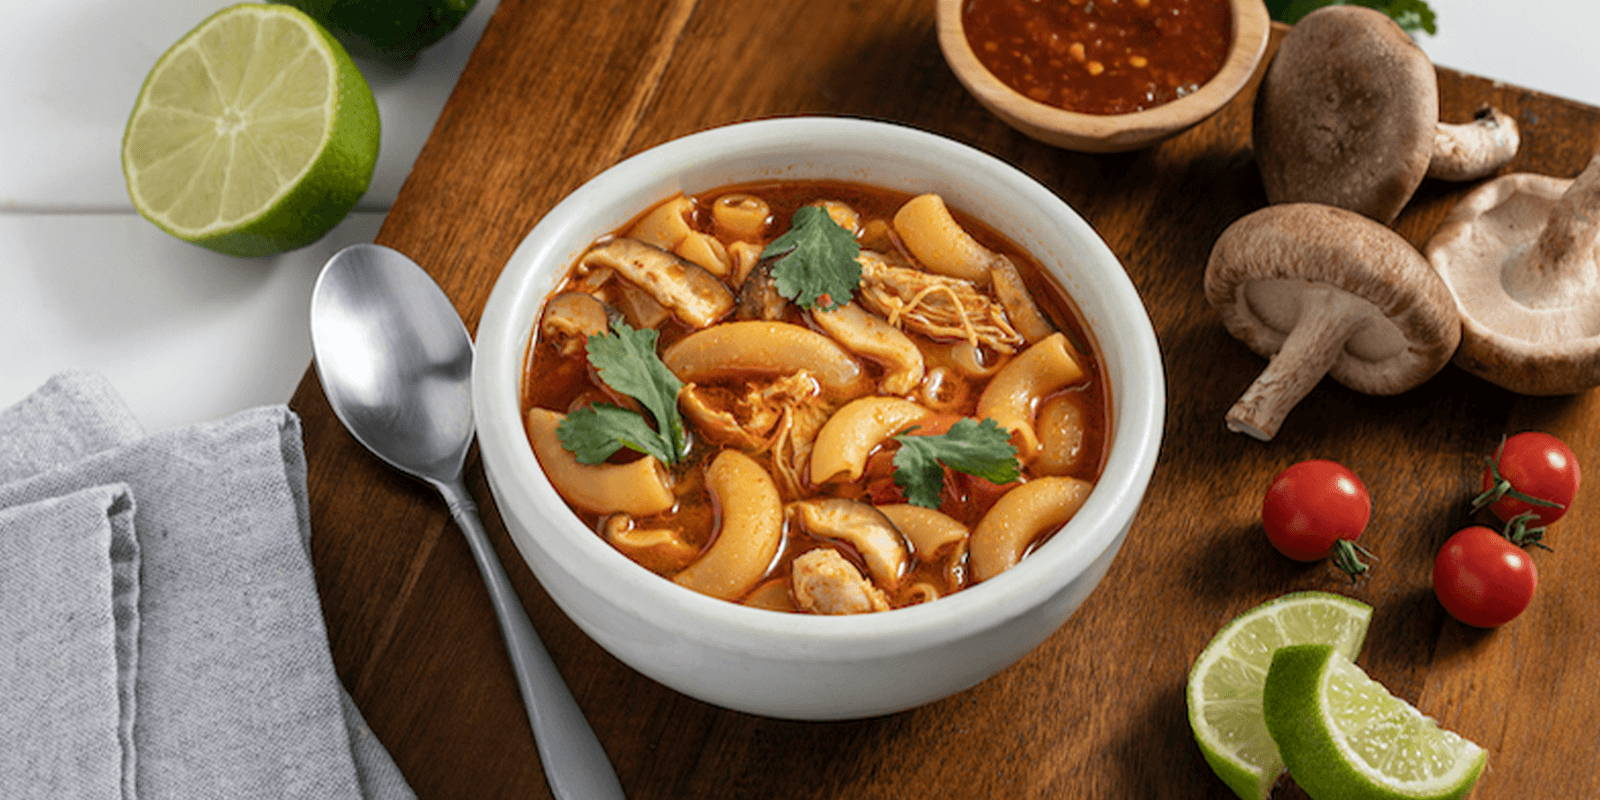 A bowl of Tom Yum-style soup made with ZENB Elbows Pasta garnished with cilantro, sambal, and lime.